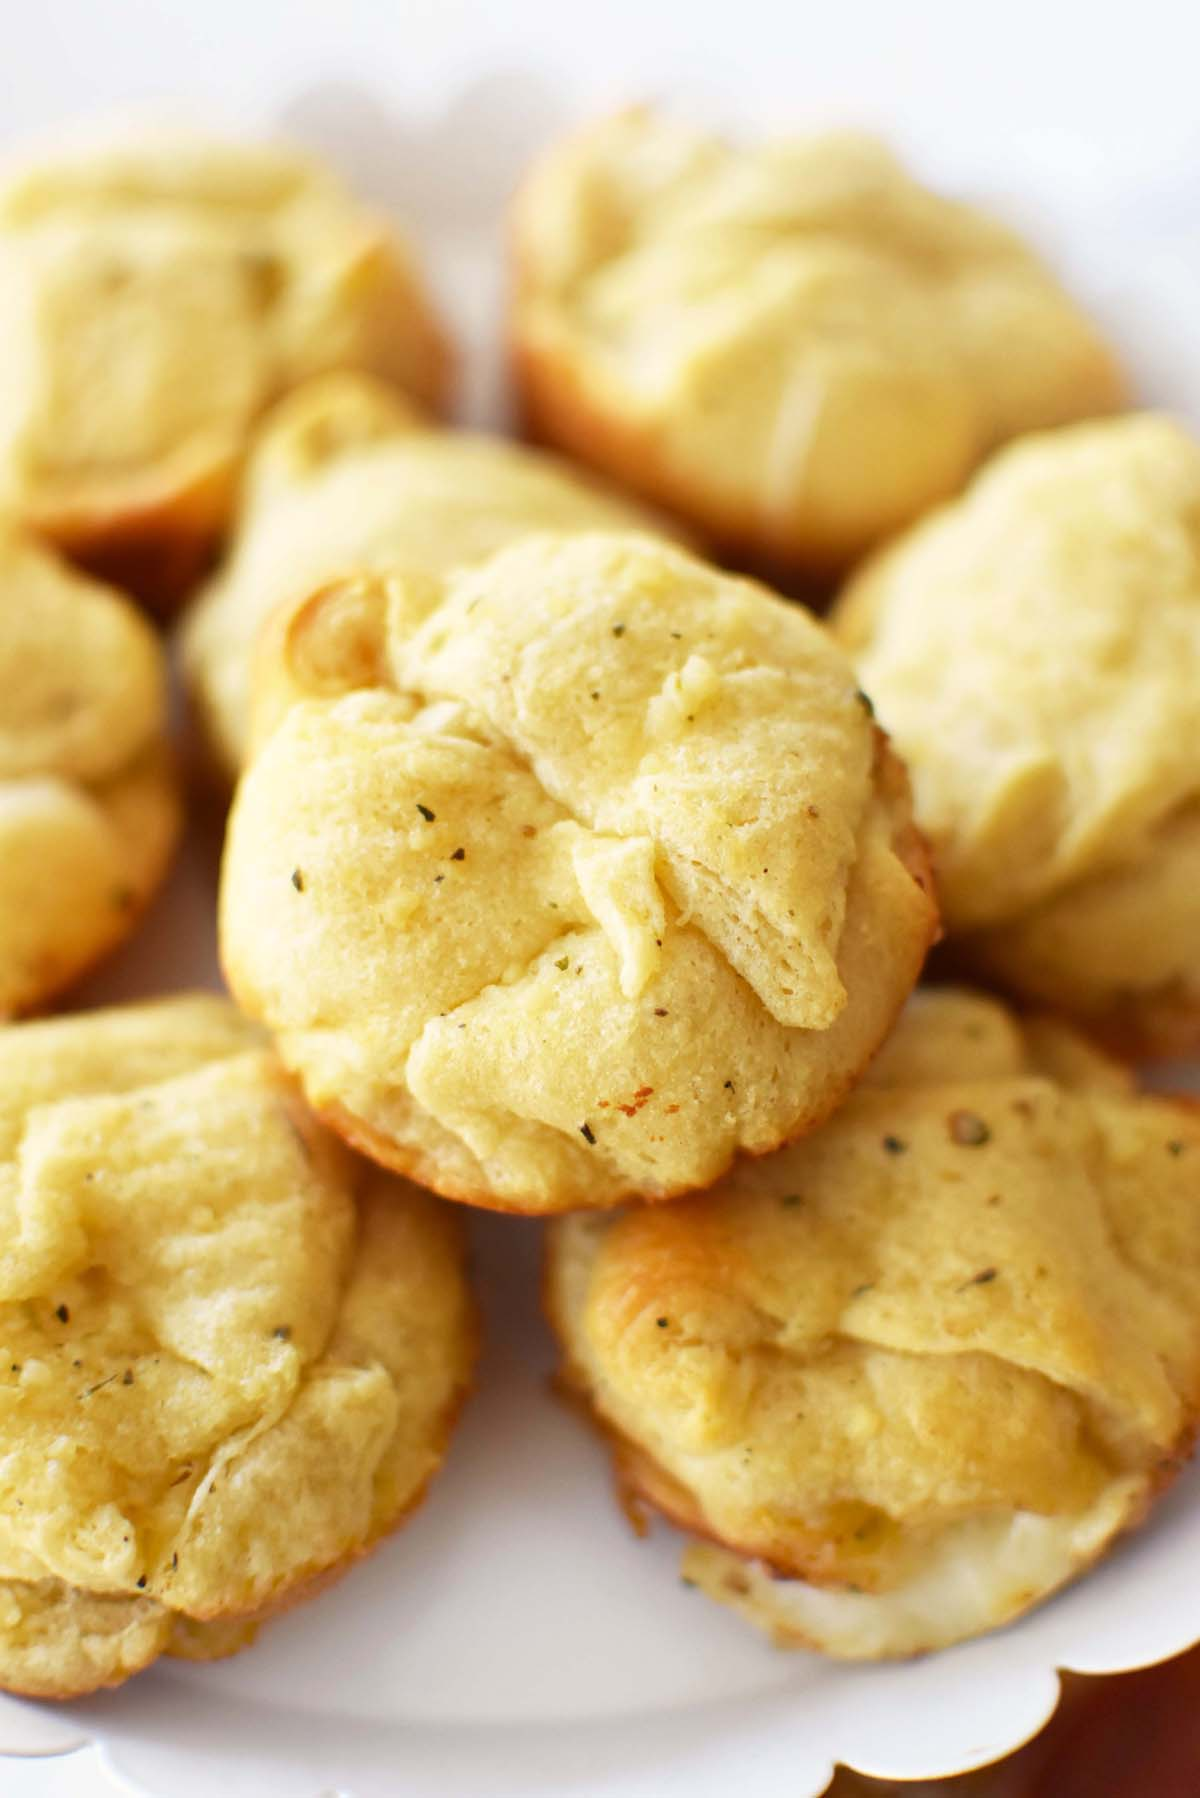 Garlic Bread Cheese Bites - Baked until golden brown and stacked on a cake stand.